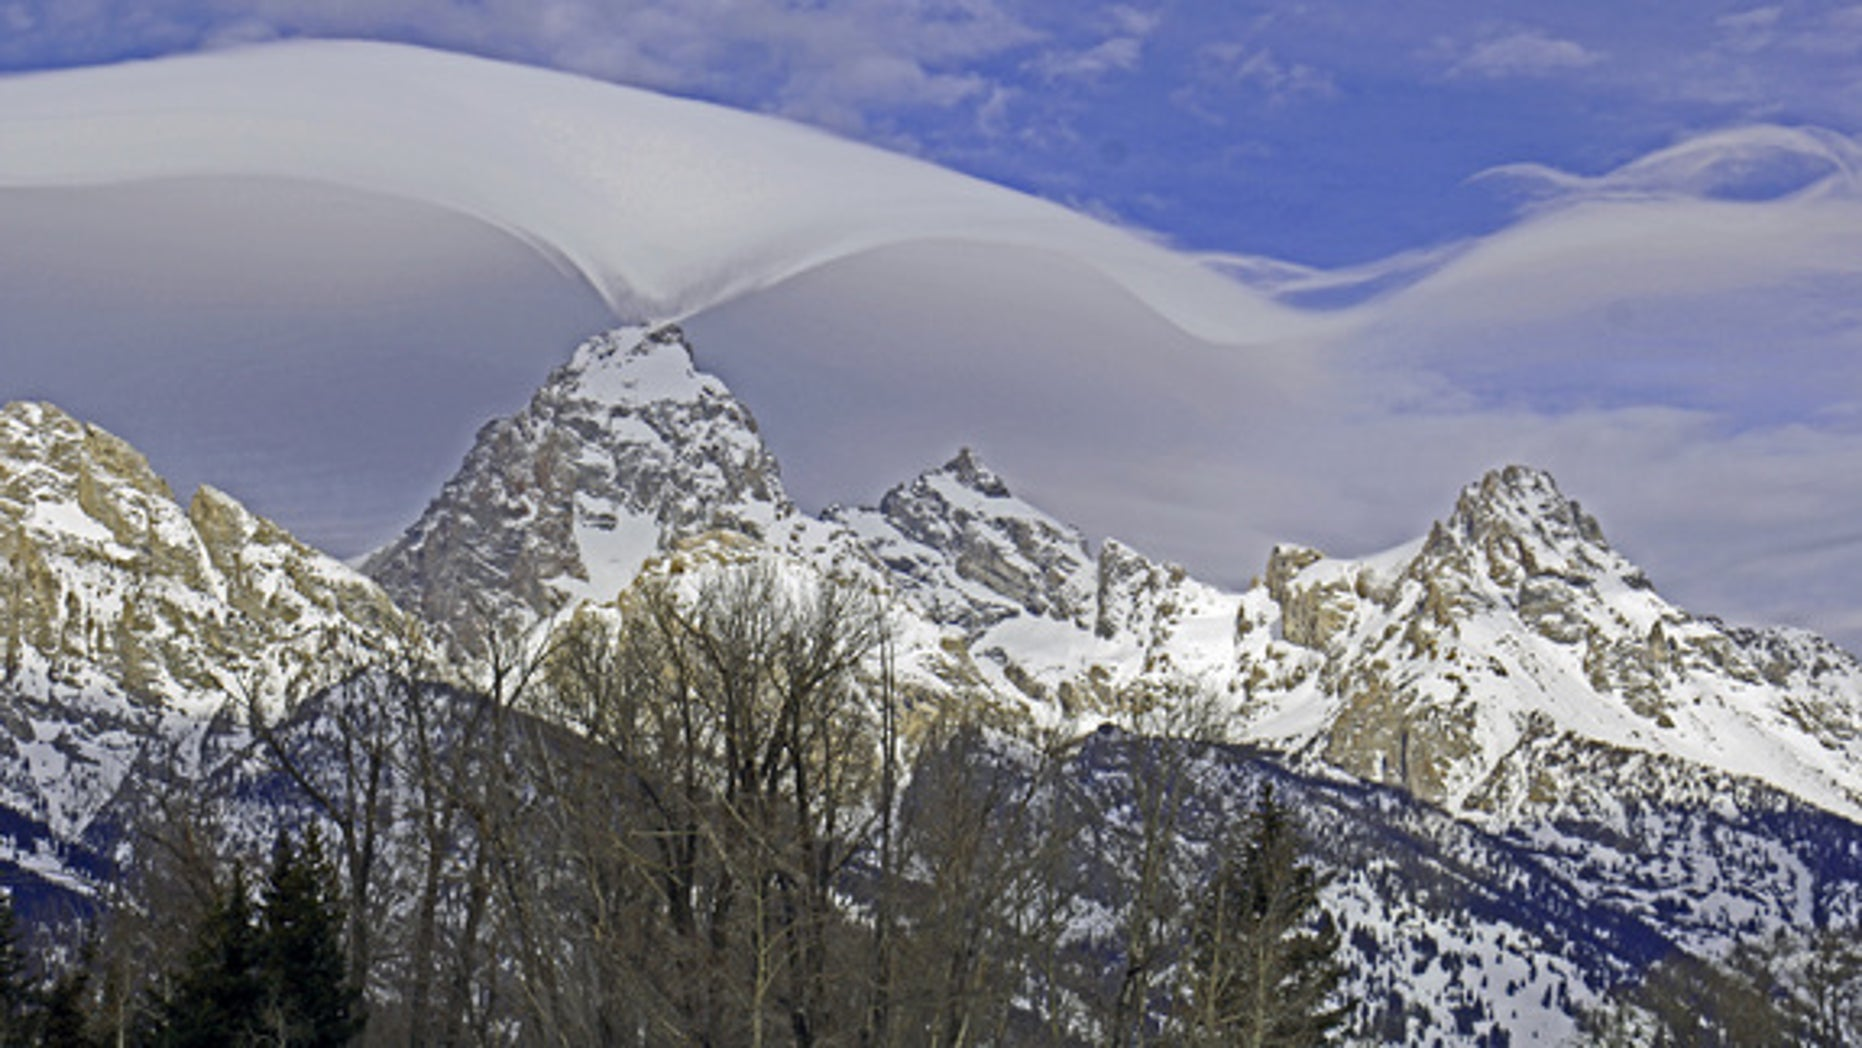 Jackie Skaggs snapped this stunning photo of a lenticular cloud embracing the summit of the Grand Teton Range from the park's headquarters in Moose, Wyoming, on Feb. 12, 2015.